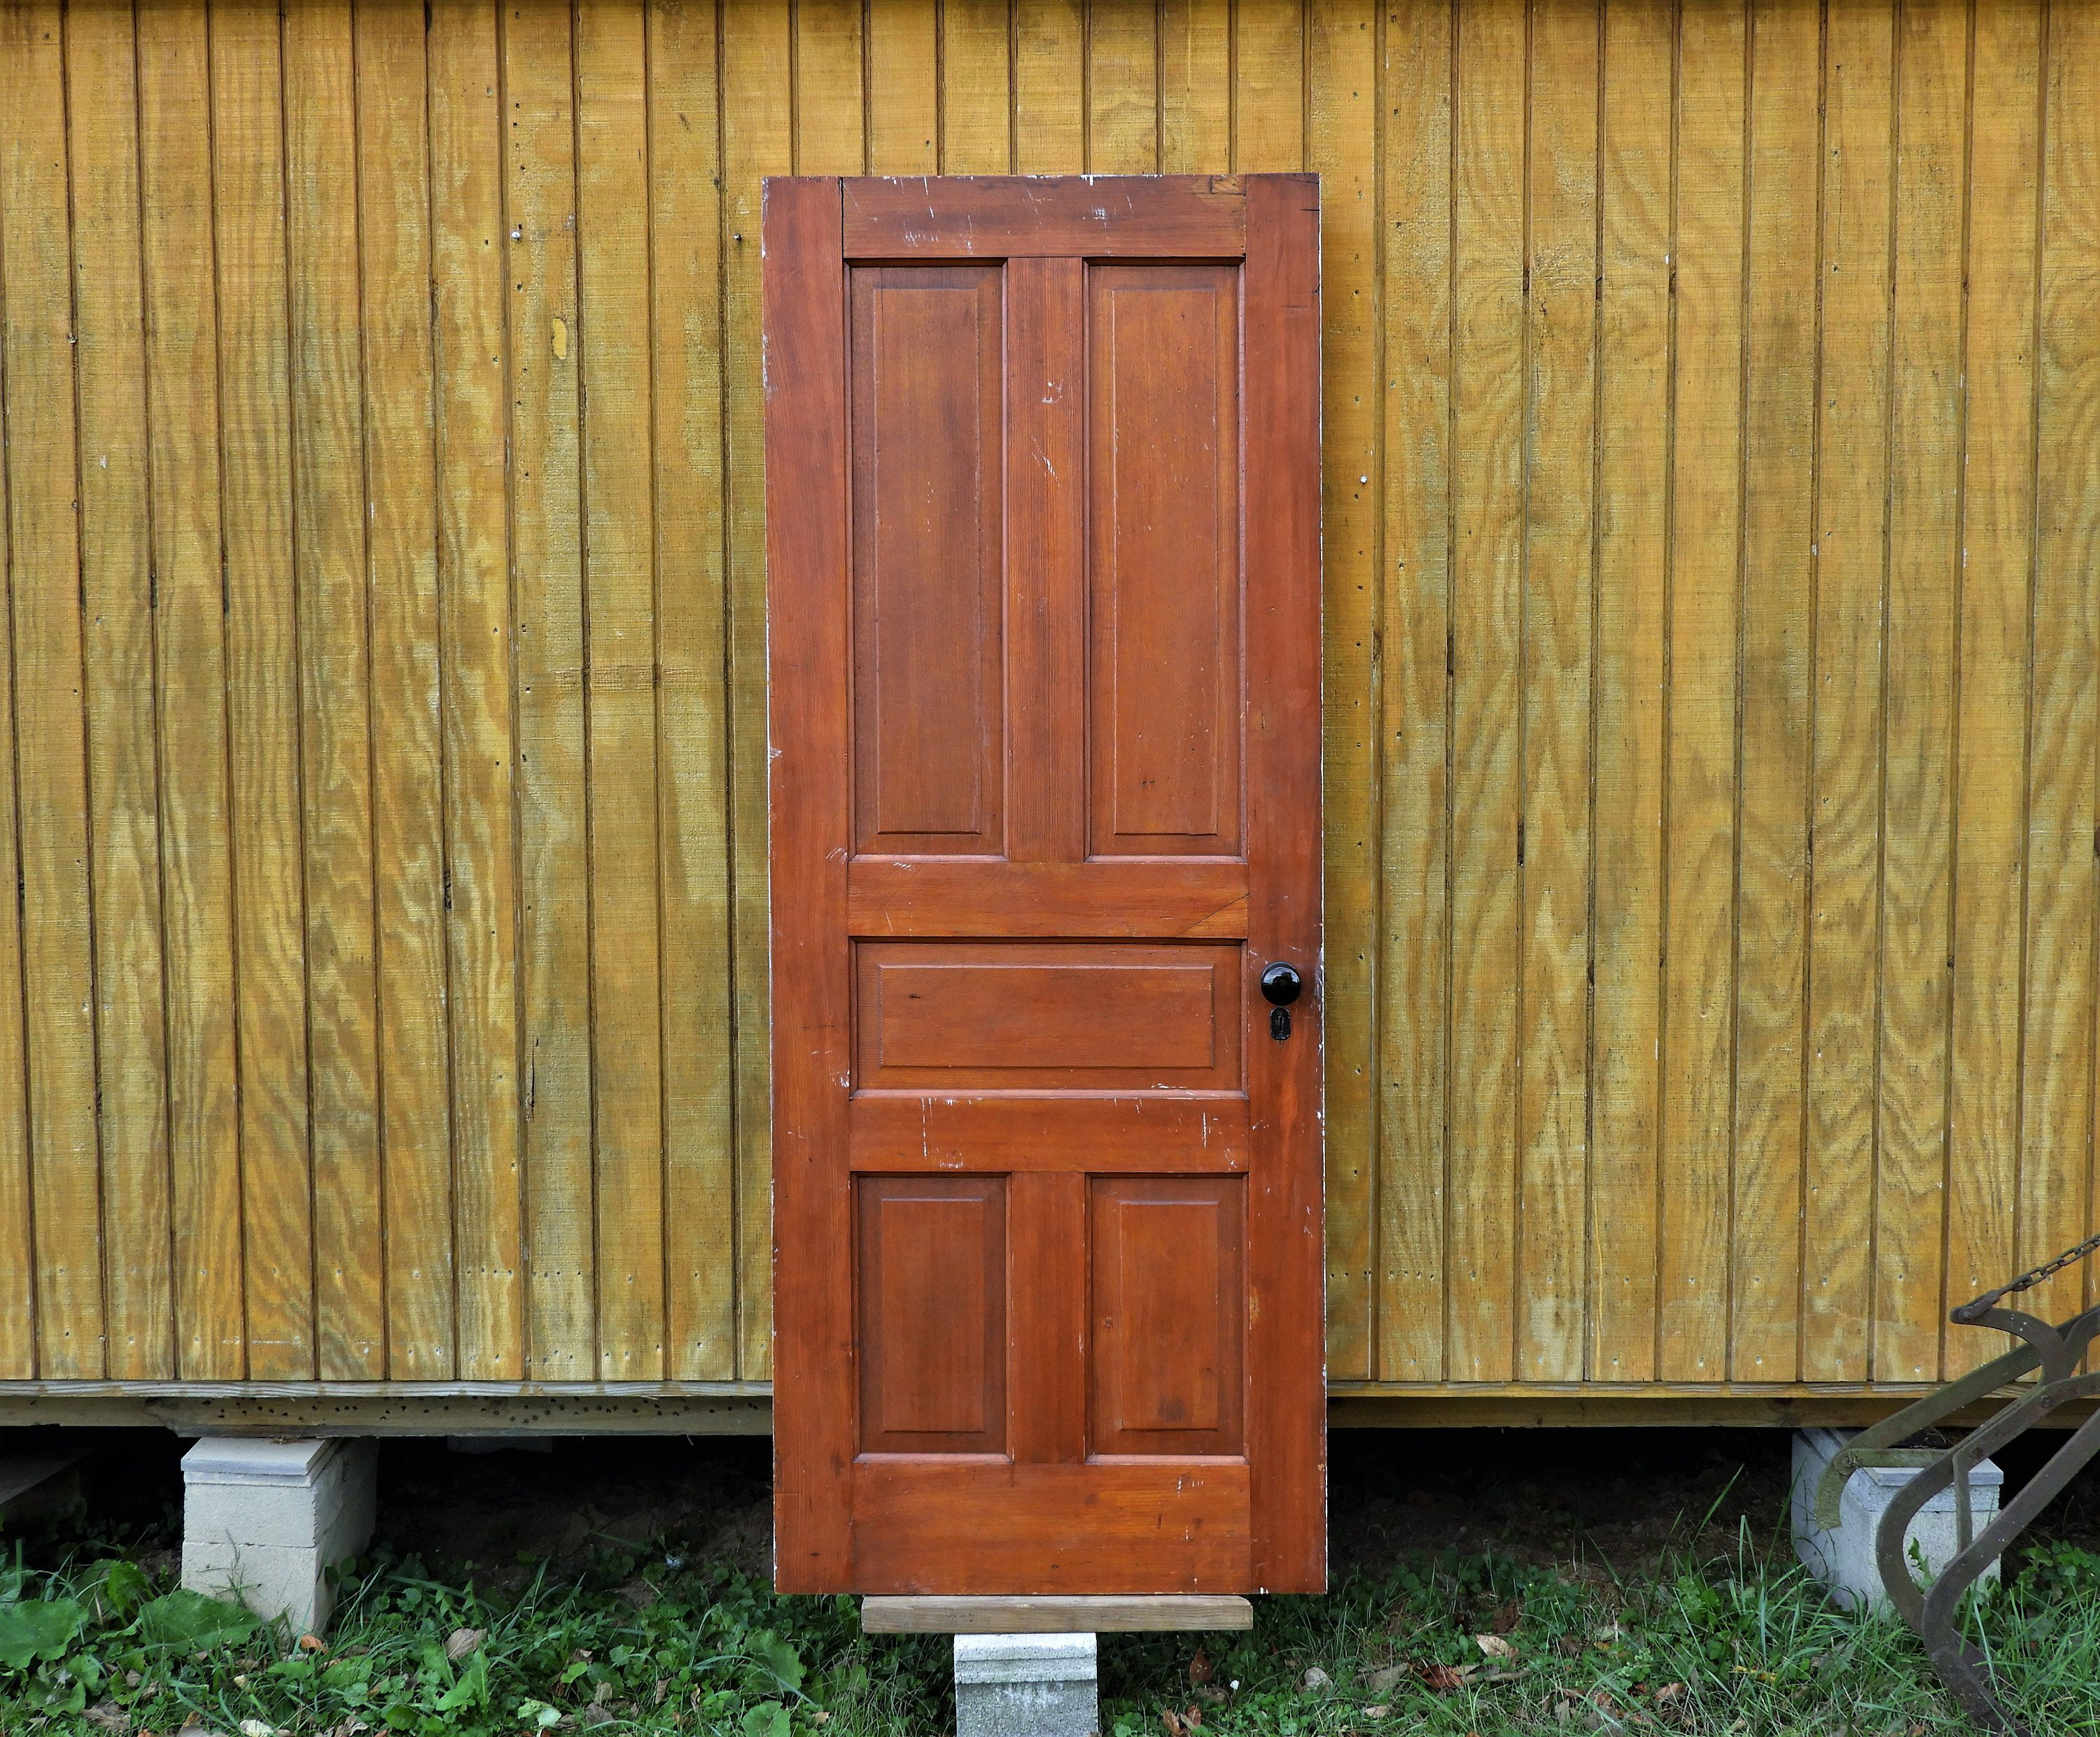 Antique Interior Door Architectural Salvage Solid Wood Home Decor Distressed White Red Brown Cypress 76 13 16 Tall X 30 Wide Antique Interior Architectural Salvage Making Barn Doors